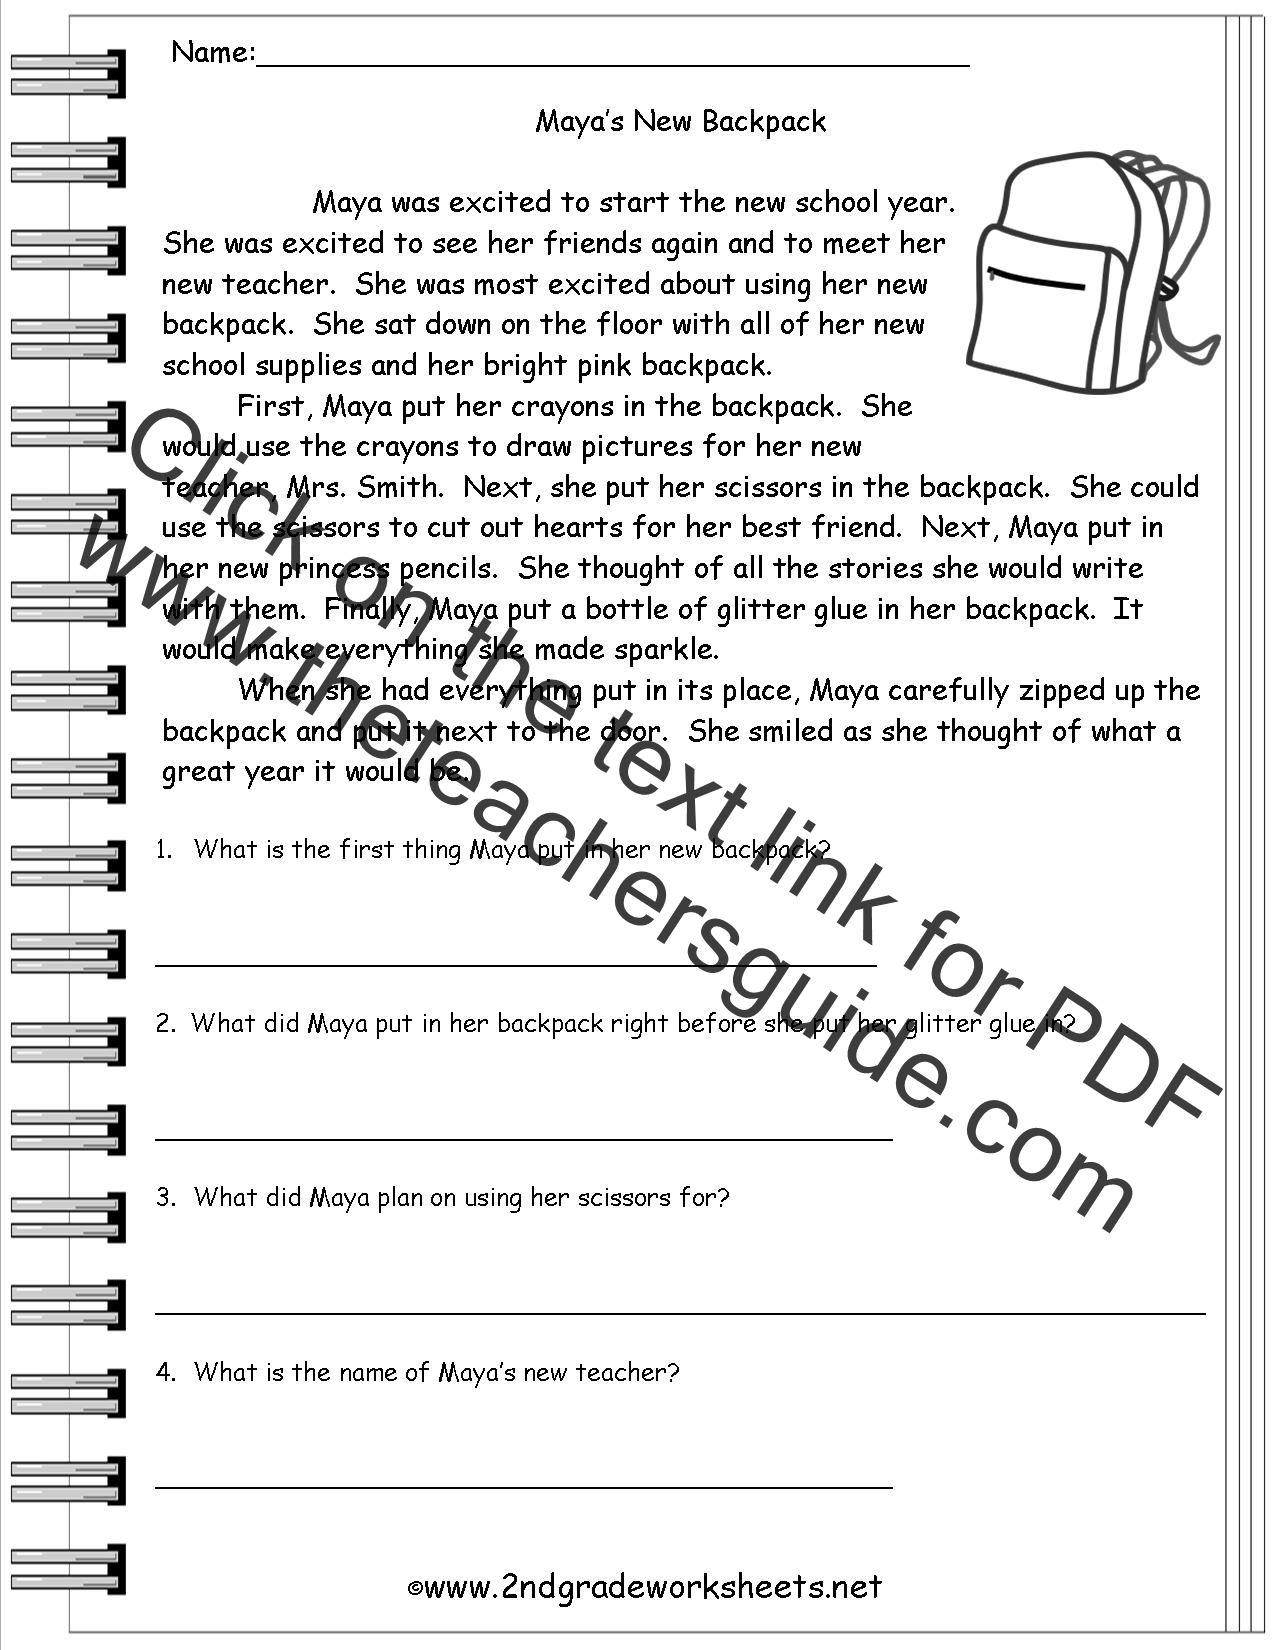 Worksheets Common Core Reading Comprehension Worksheets reading worksheeets literature worksheets common core